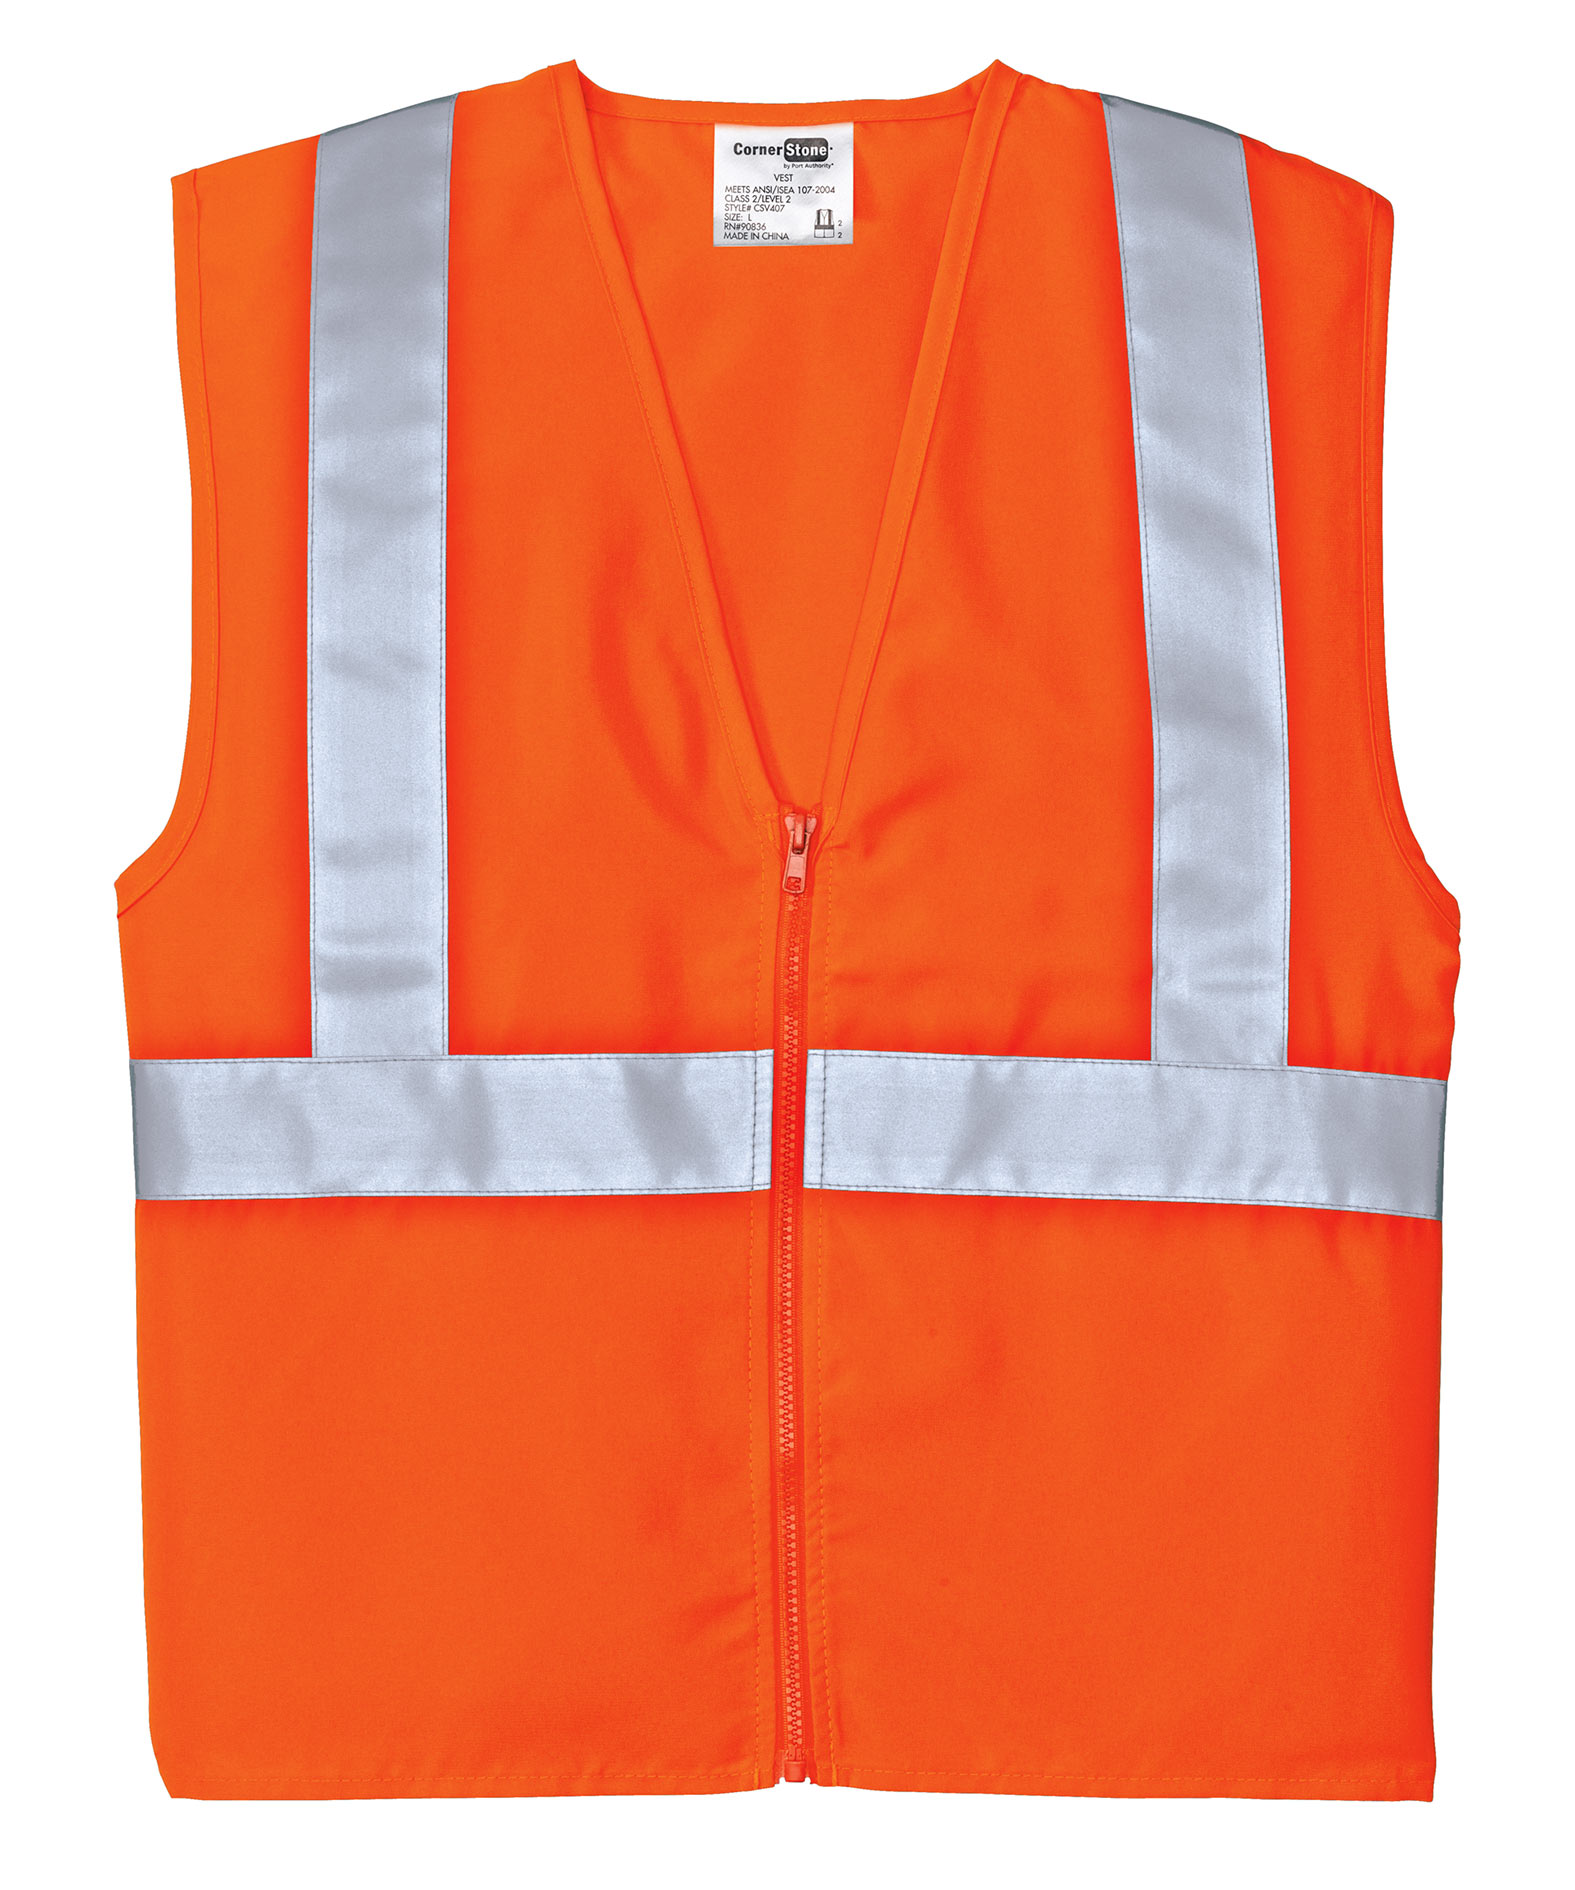 ANSI/ISEA Class 2 CornerStone High Visibility Adult Vest